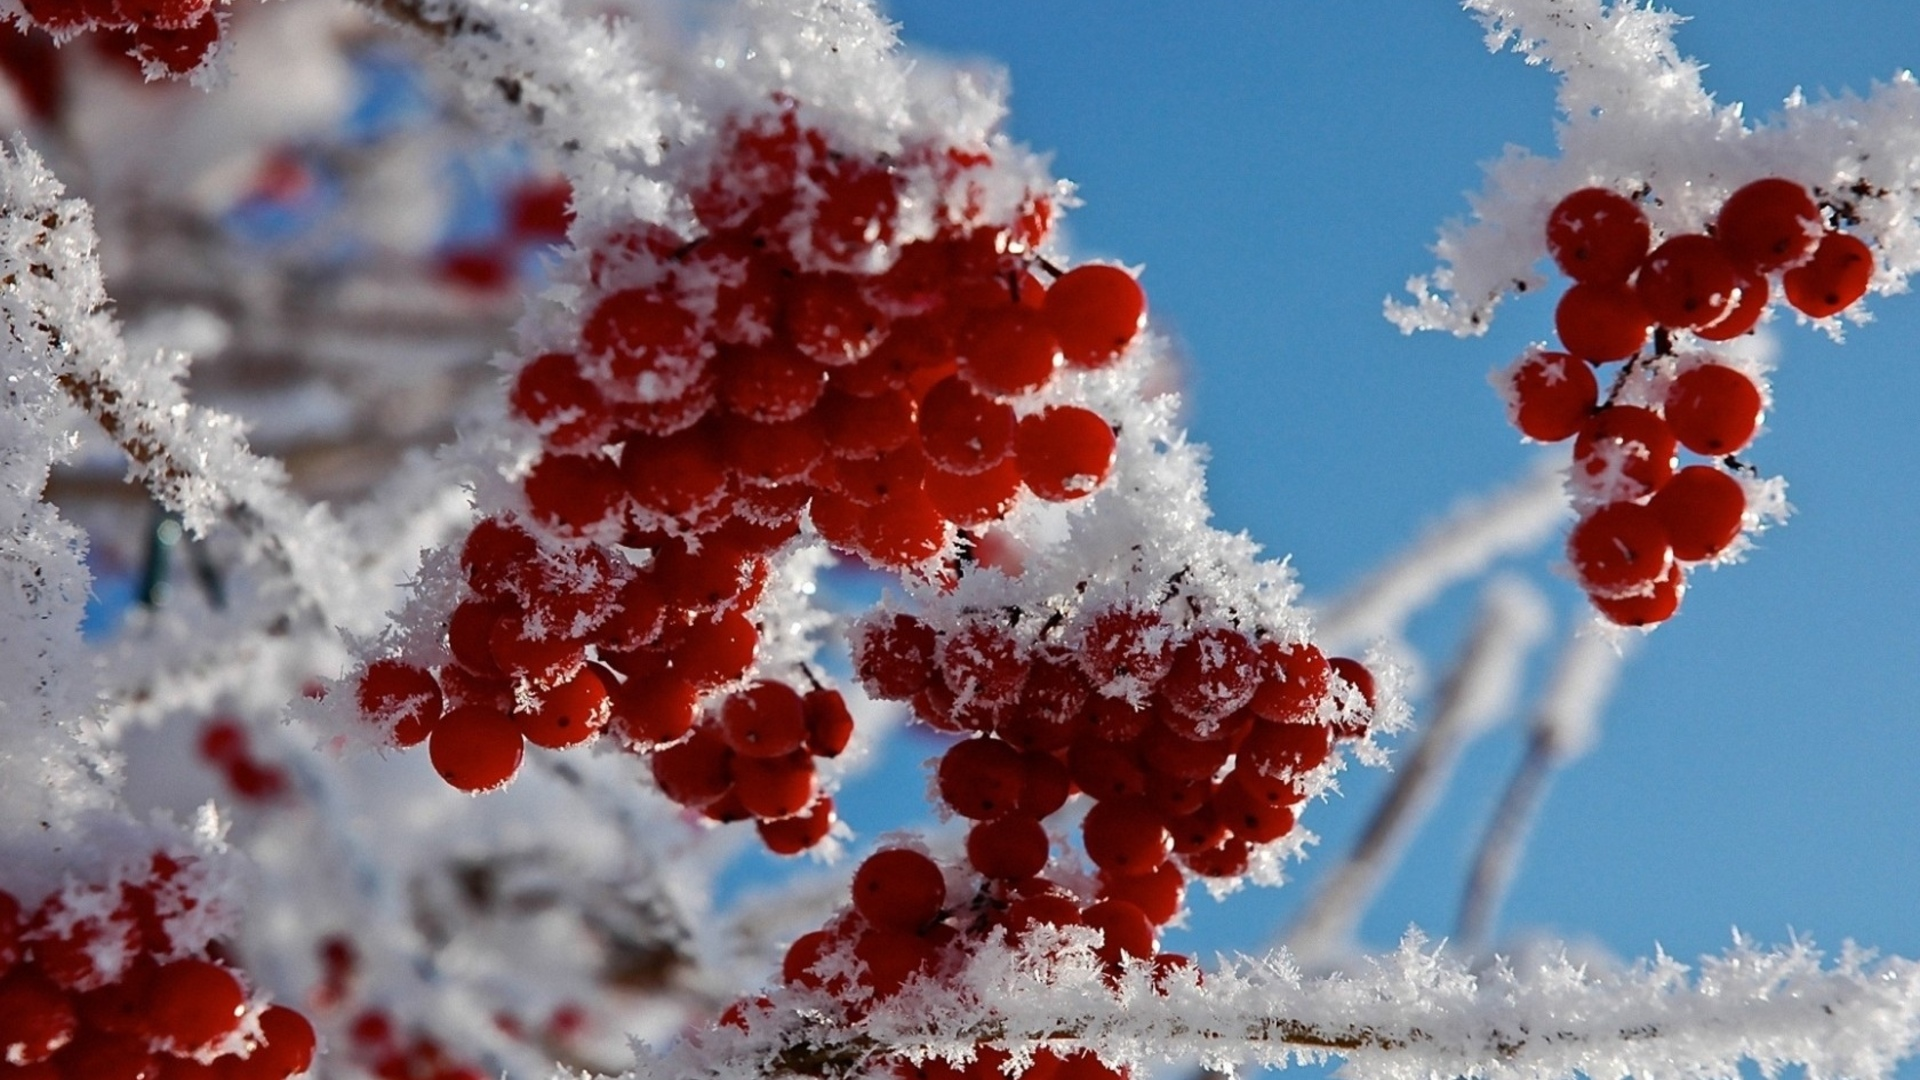 Cute 3d Cartoon Wallpapers Red Frozen Fruits Cold Winter Time For Nature